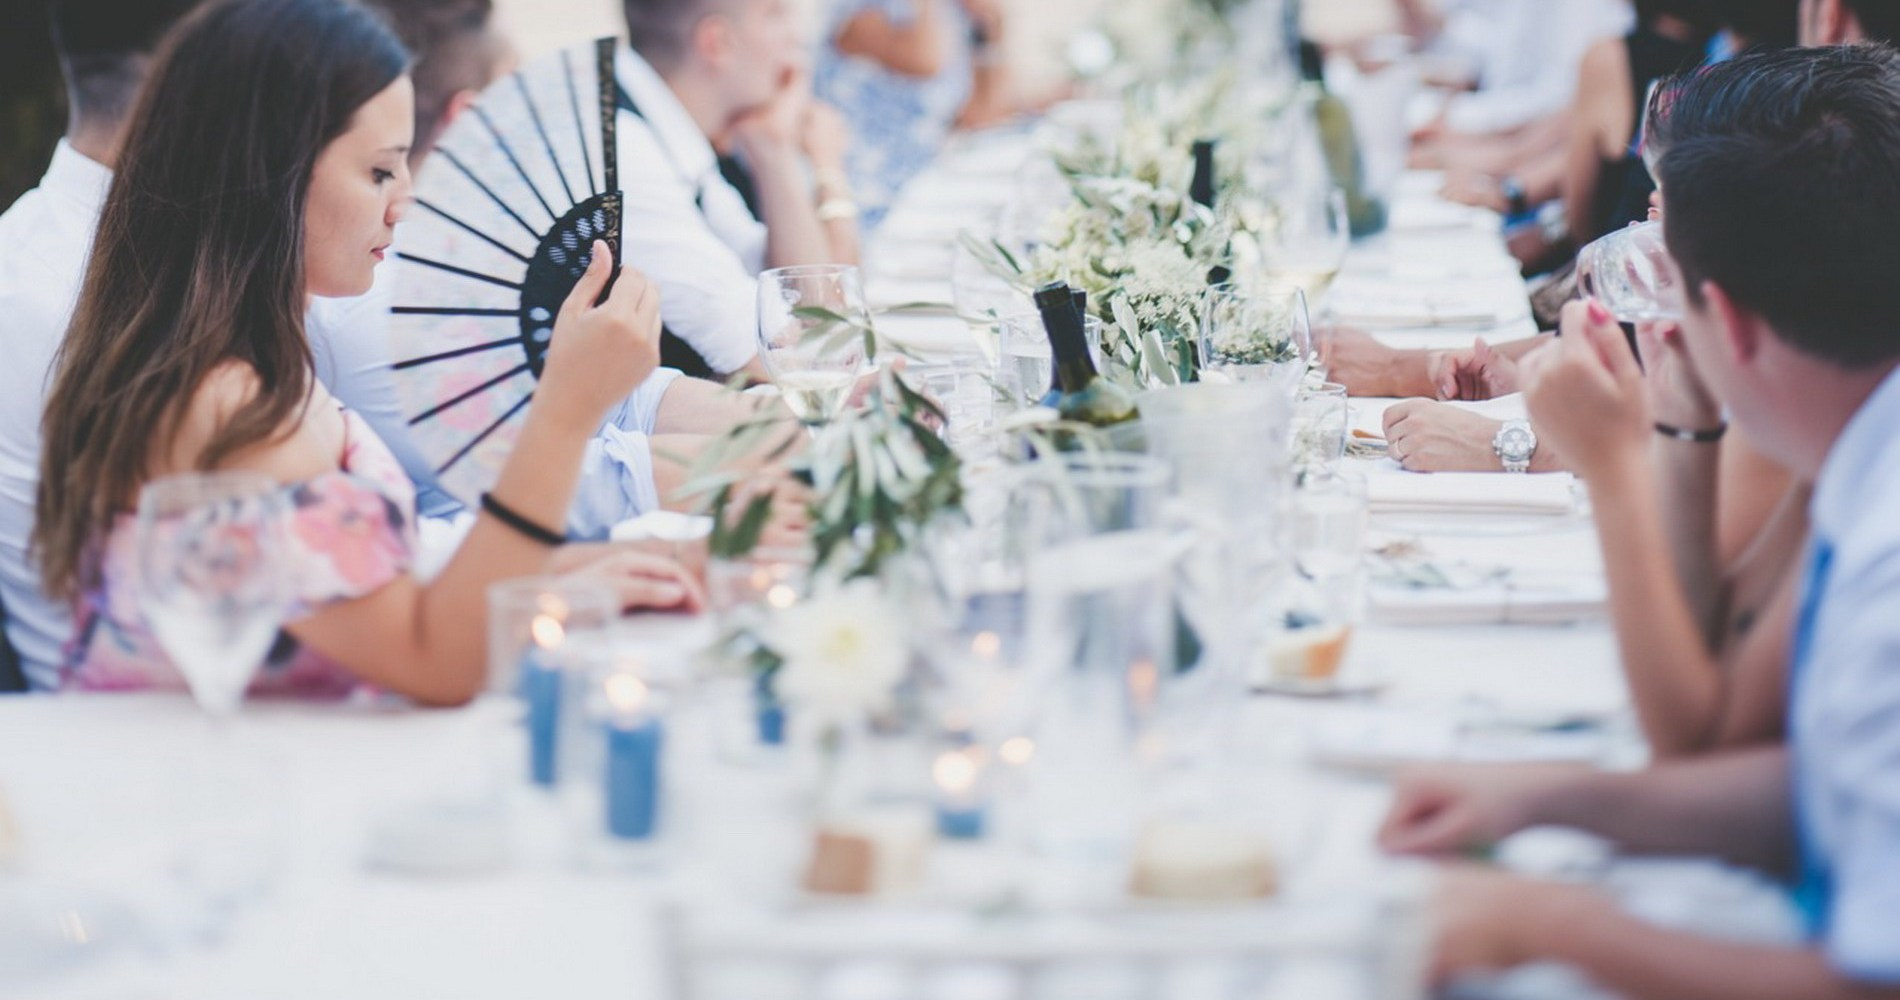 A Sweet Italian Wedding with an Ode to All Things Greek